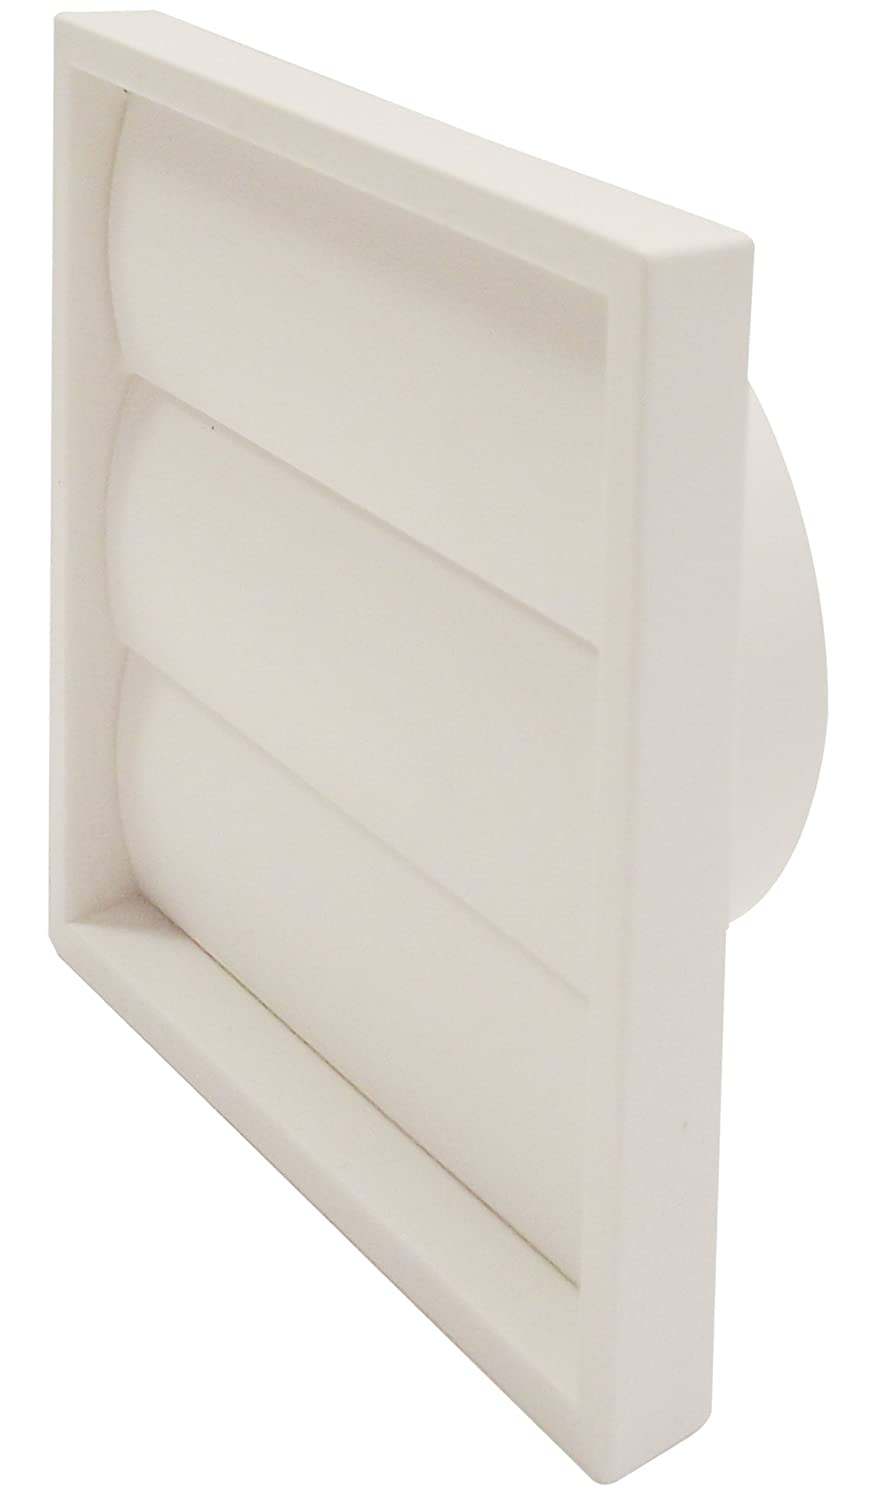 Manrose 1202w 6-inch Gravity Wall Grille - White